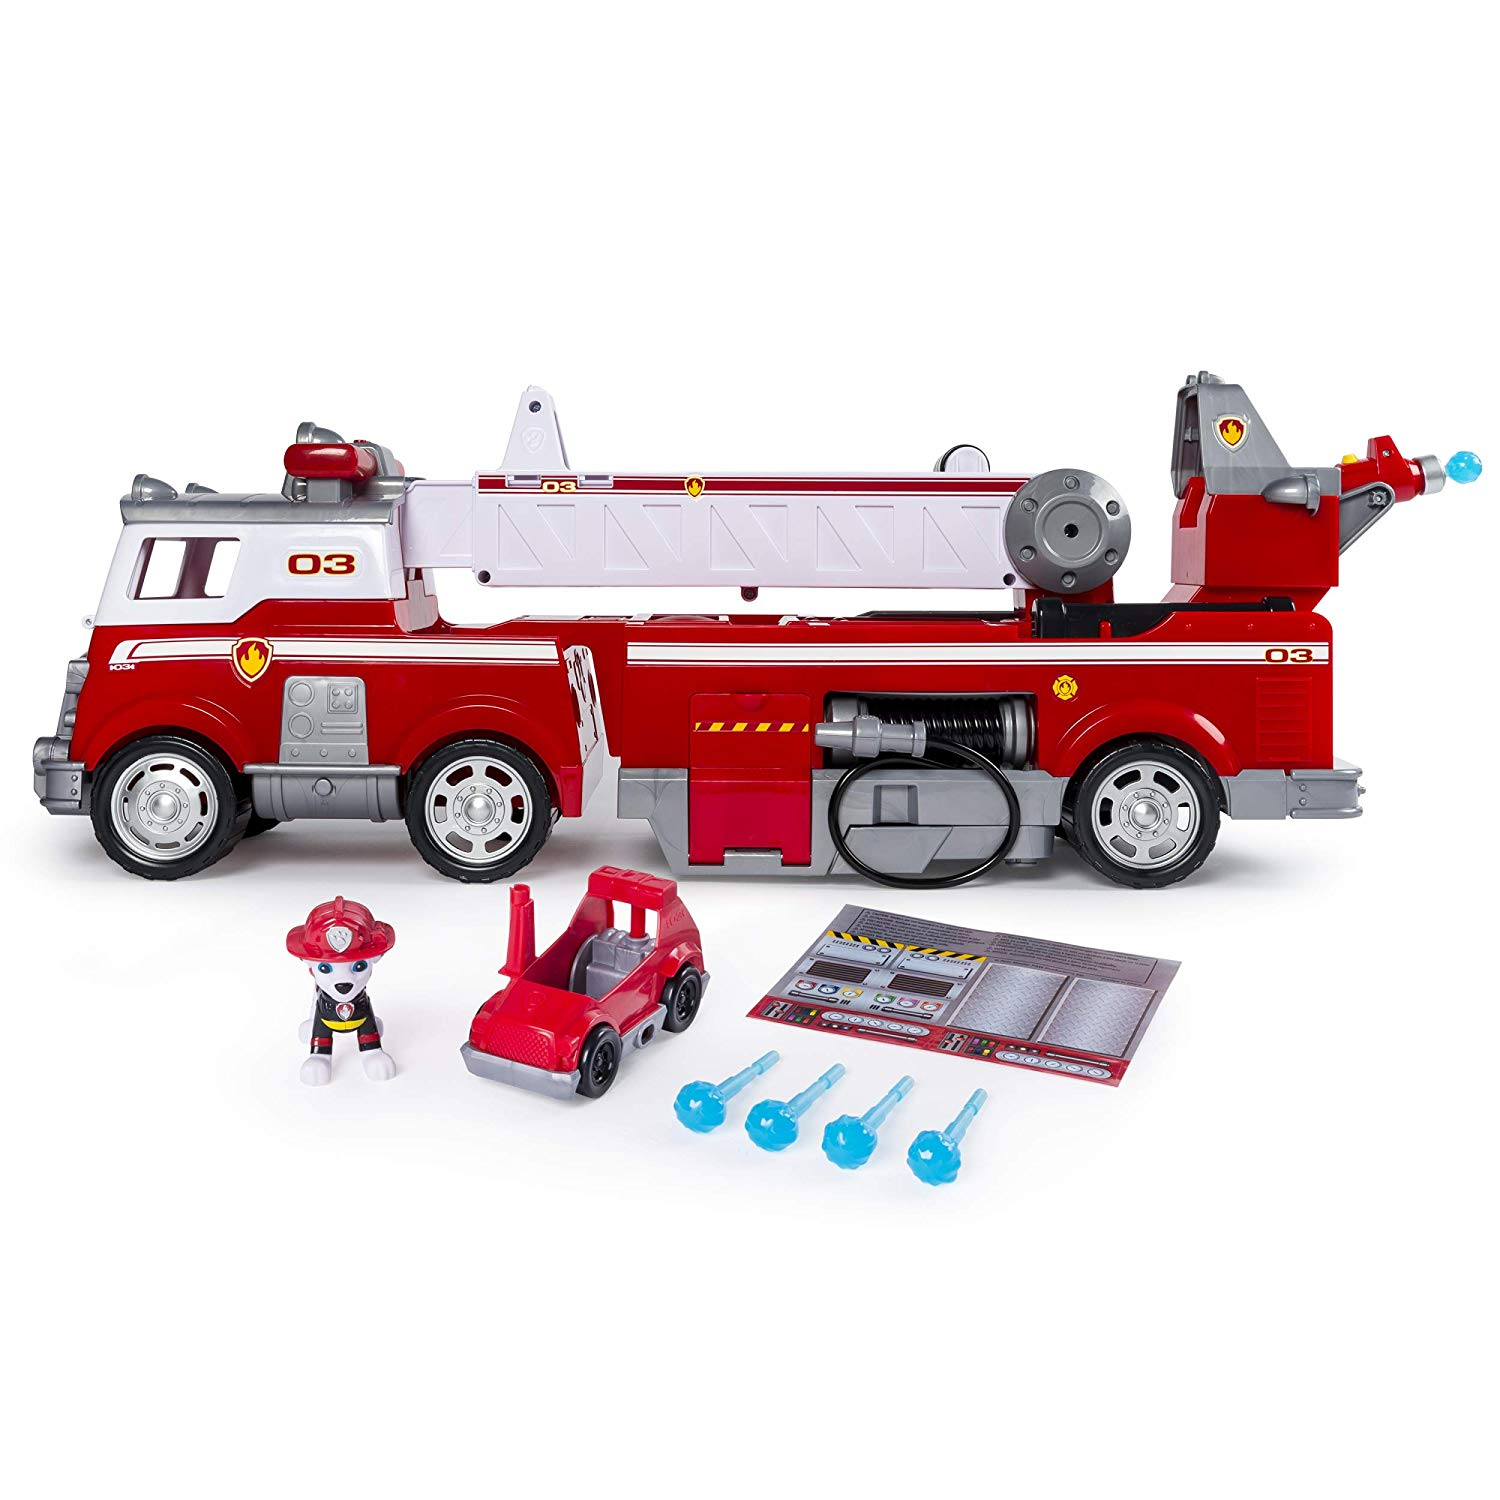 56% off Paw Patrol Ultimate Rescue Fire Truck – £30.8